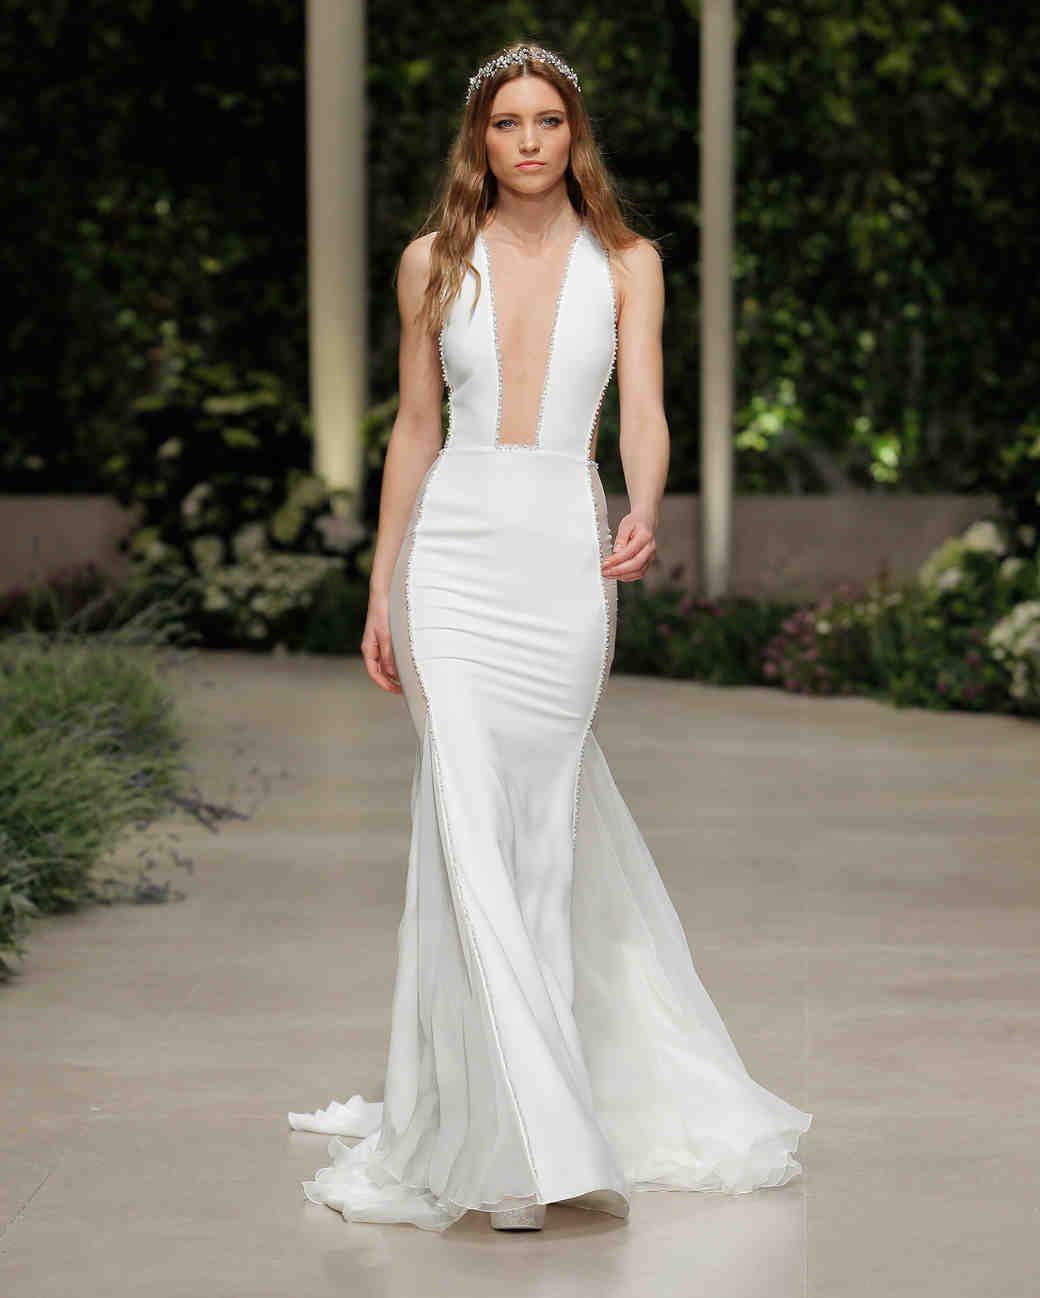 pronovias wedding dress spring 2019 square plunge neckline